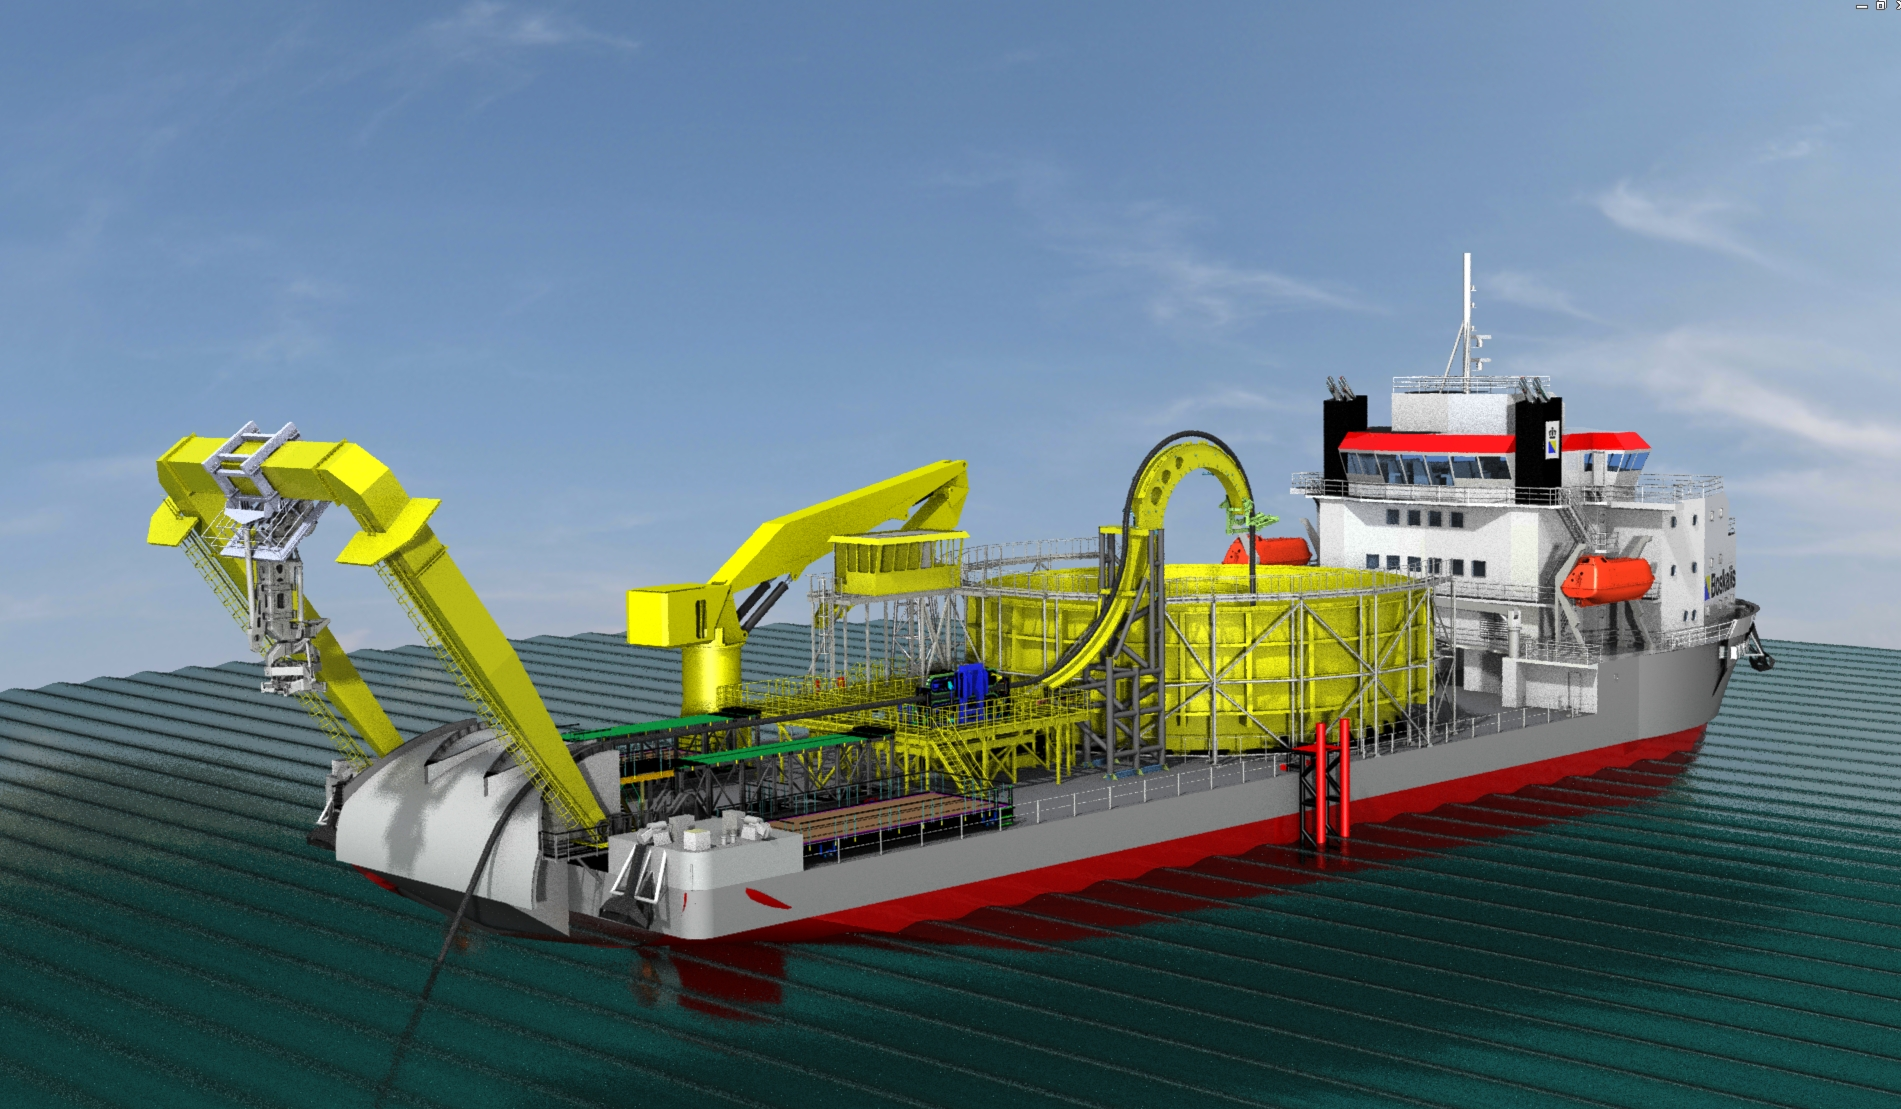 Caley A Frame For Boskalis Ndurance Cable Laying Vessel